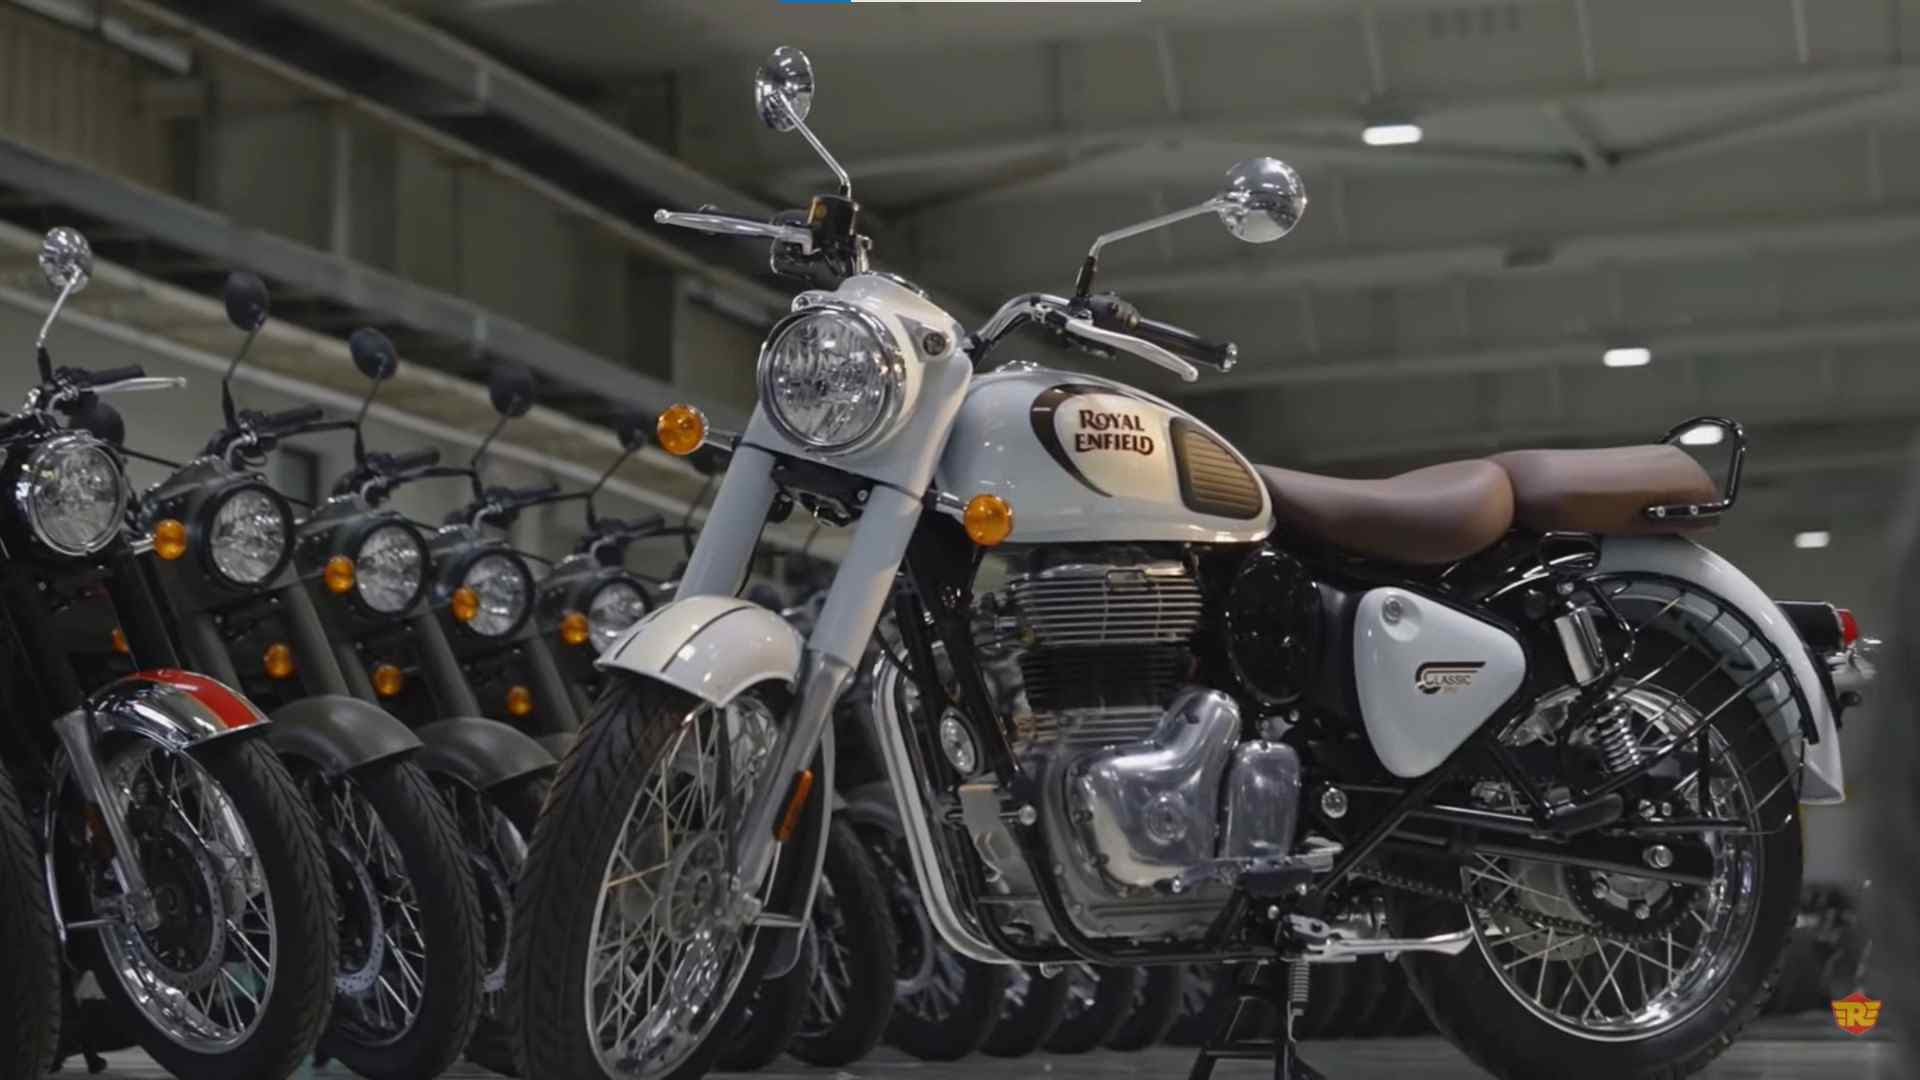 The 2022 Royal Enfield Classic 350 has the same 349 cc engine as the Meteor 350. Image: Royal Enfield